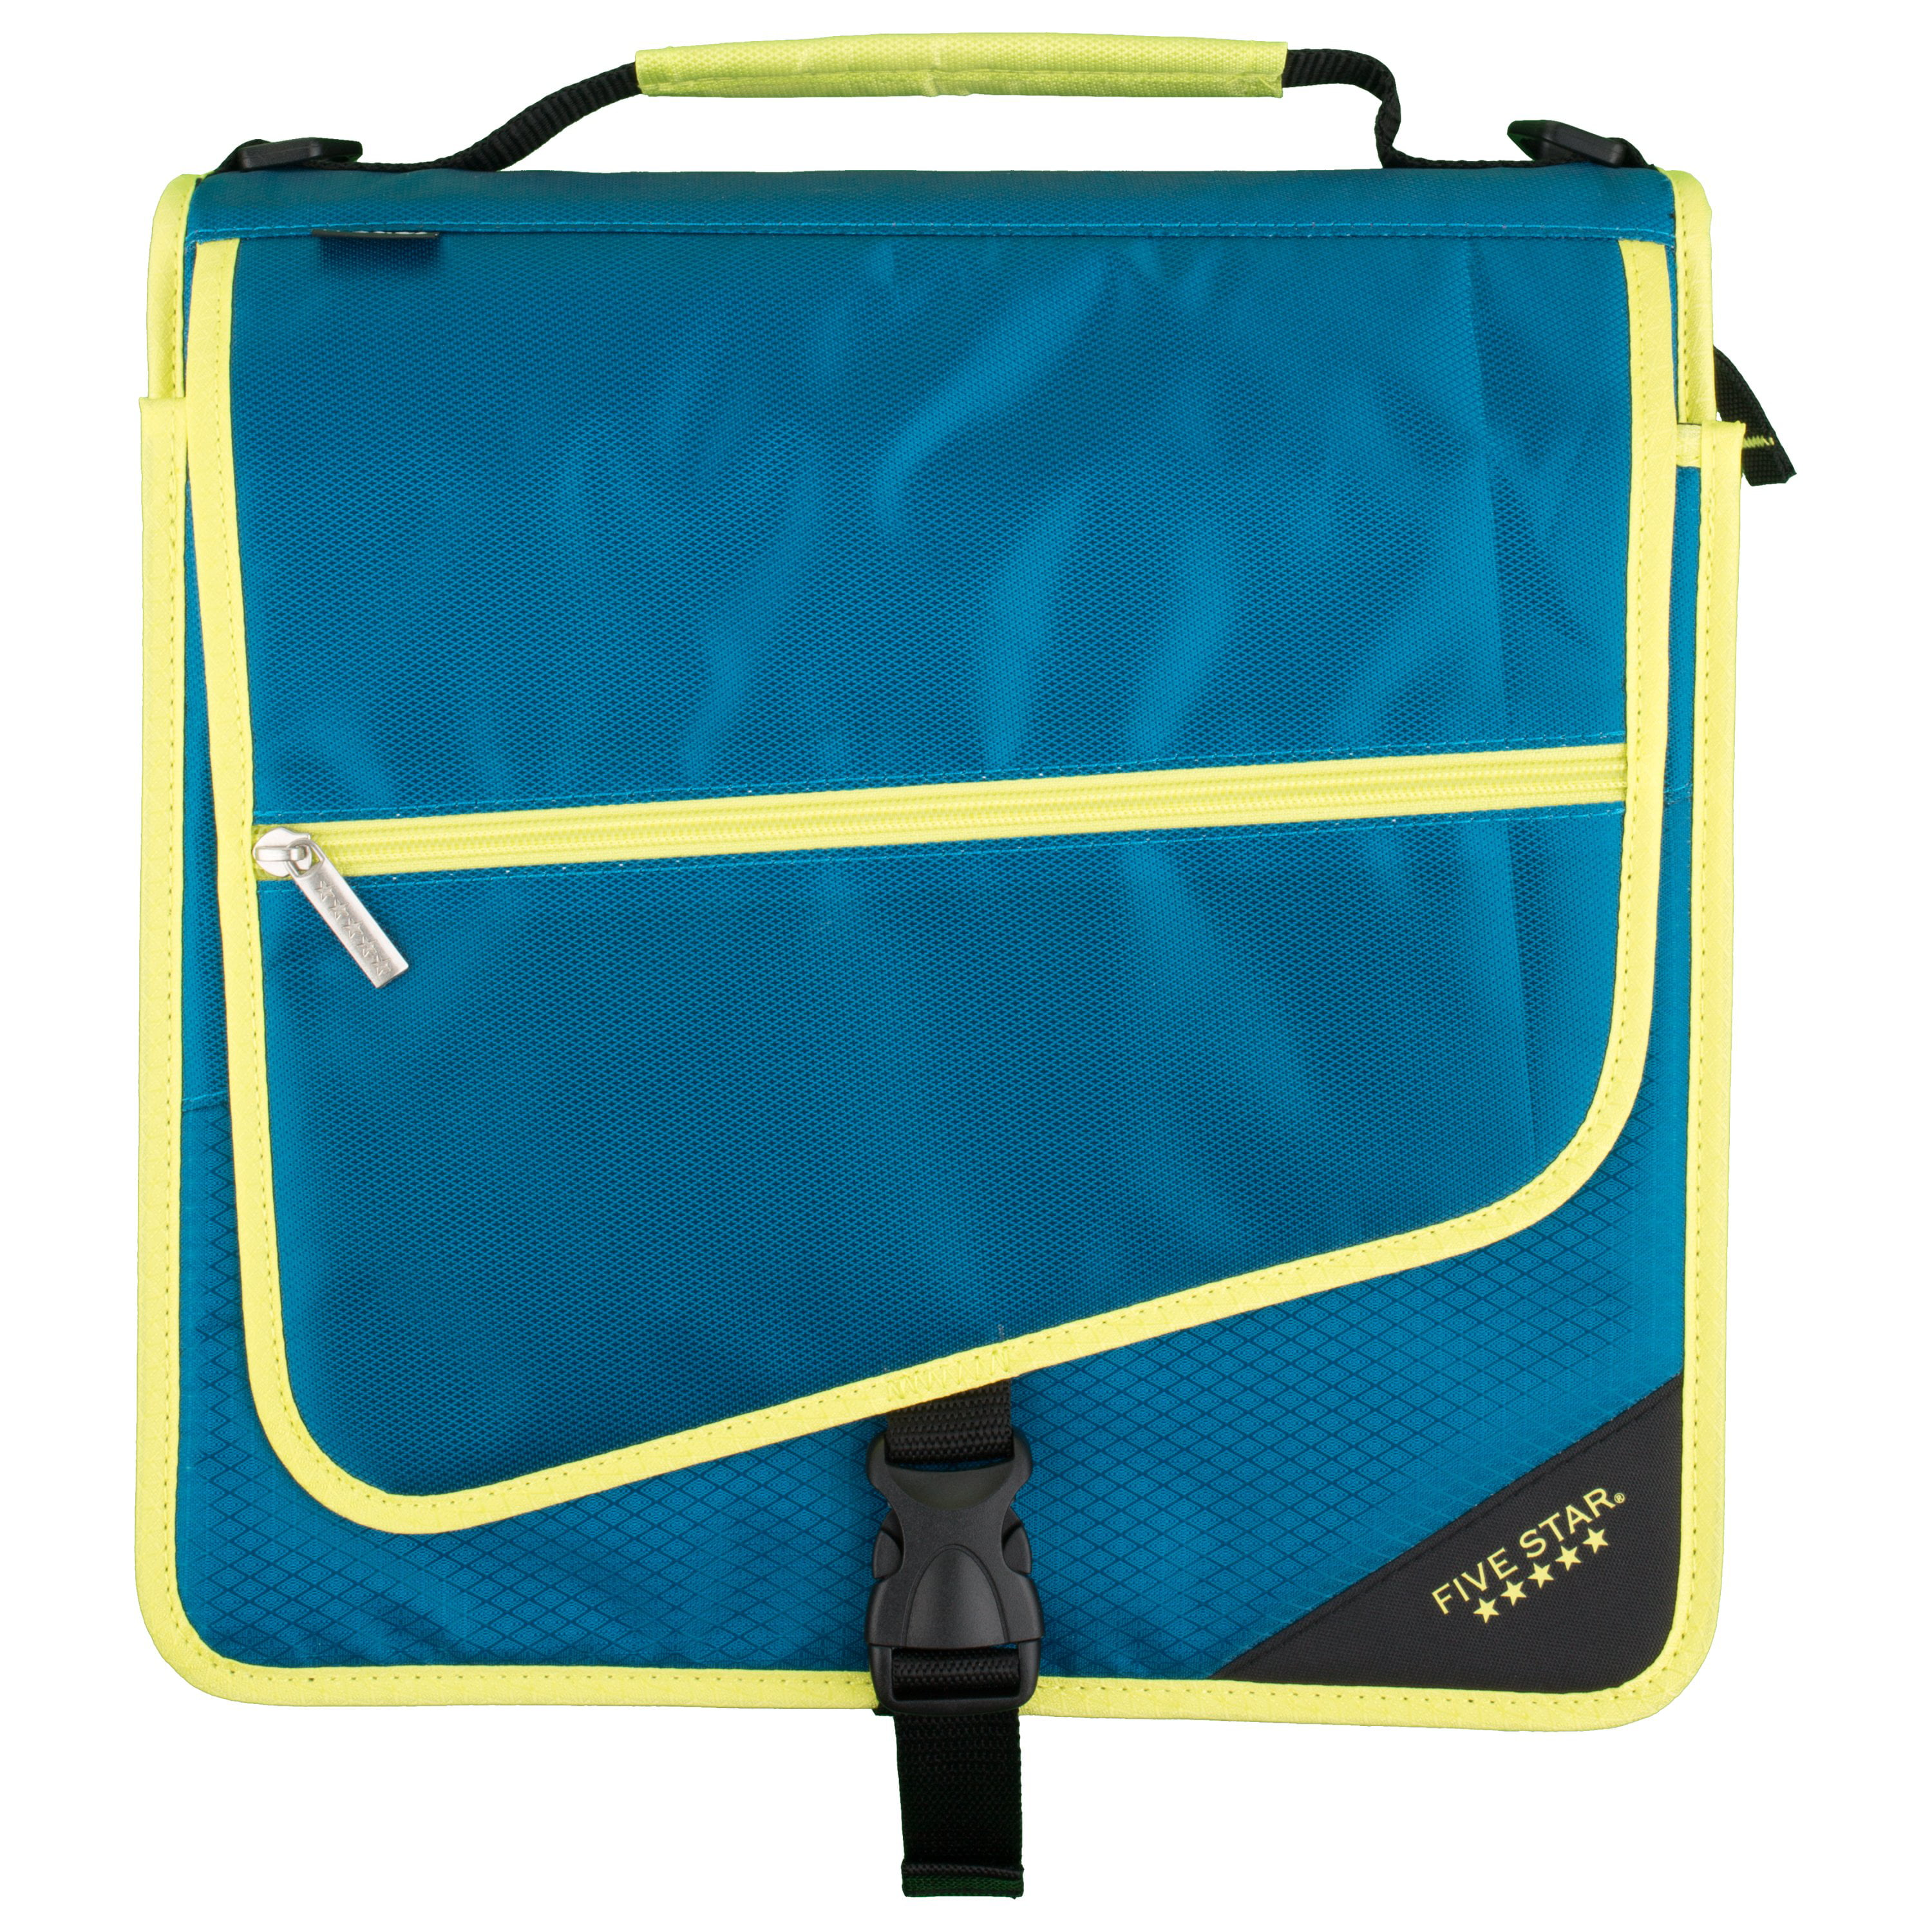 BinderBag Messenger Zippered 3-Ring Binder Bag